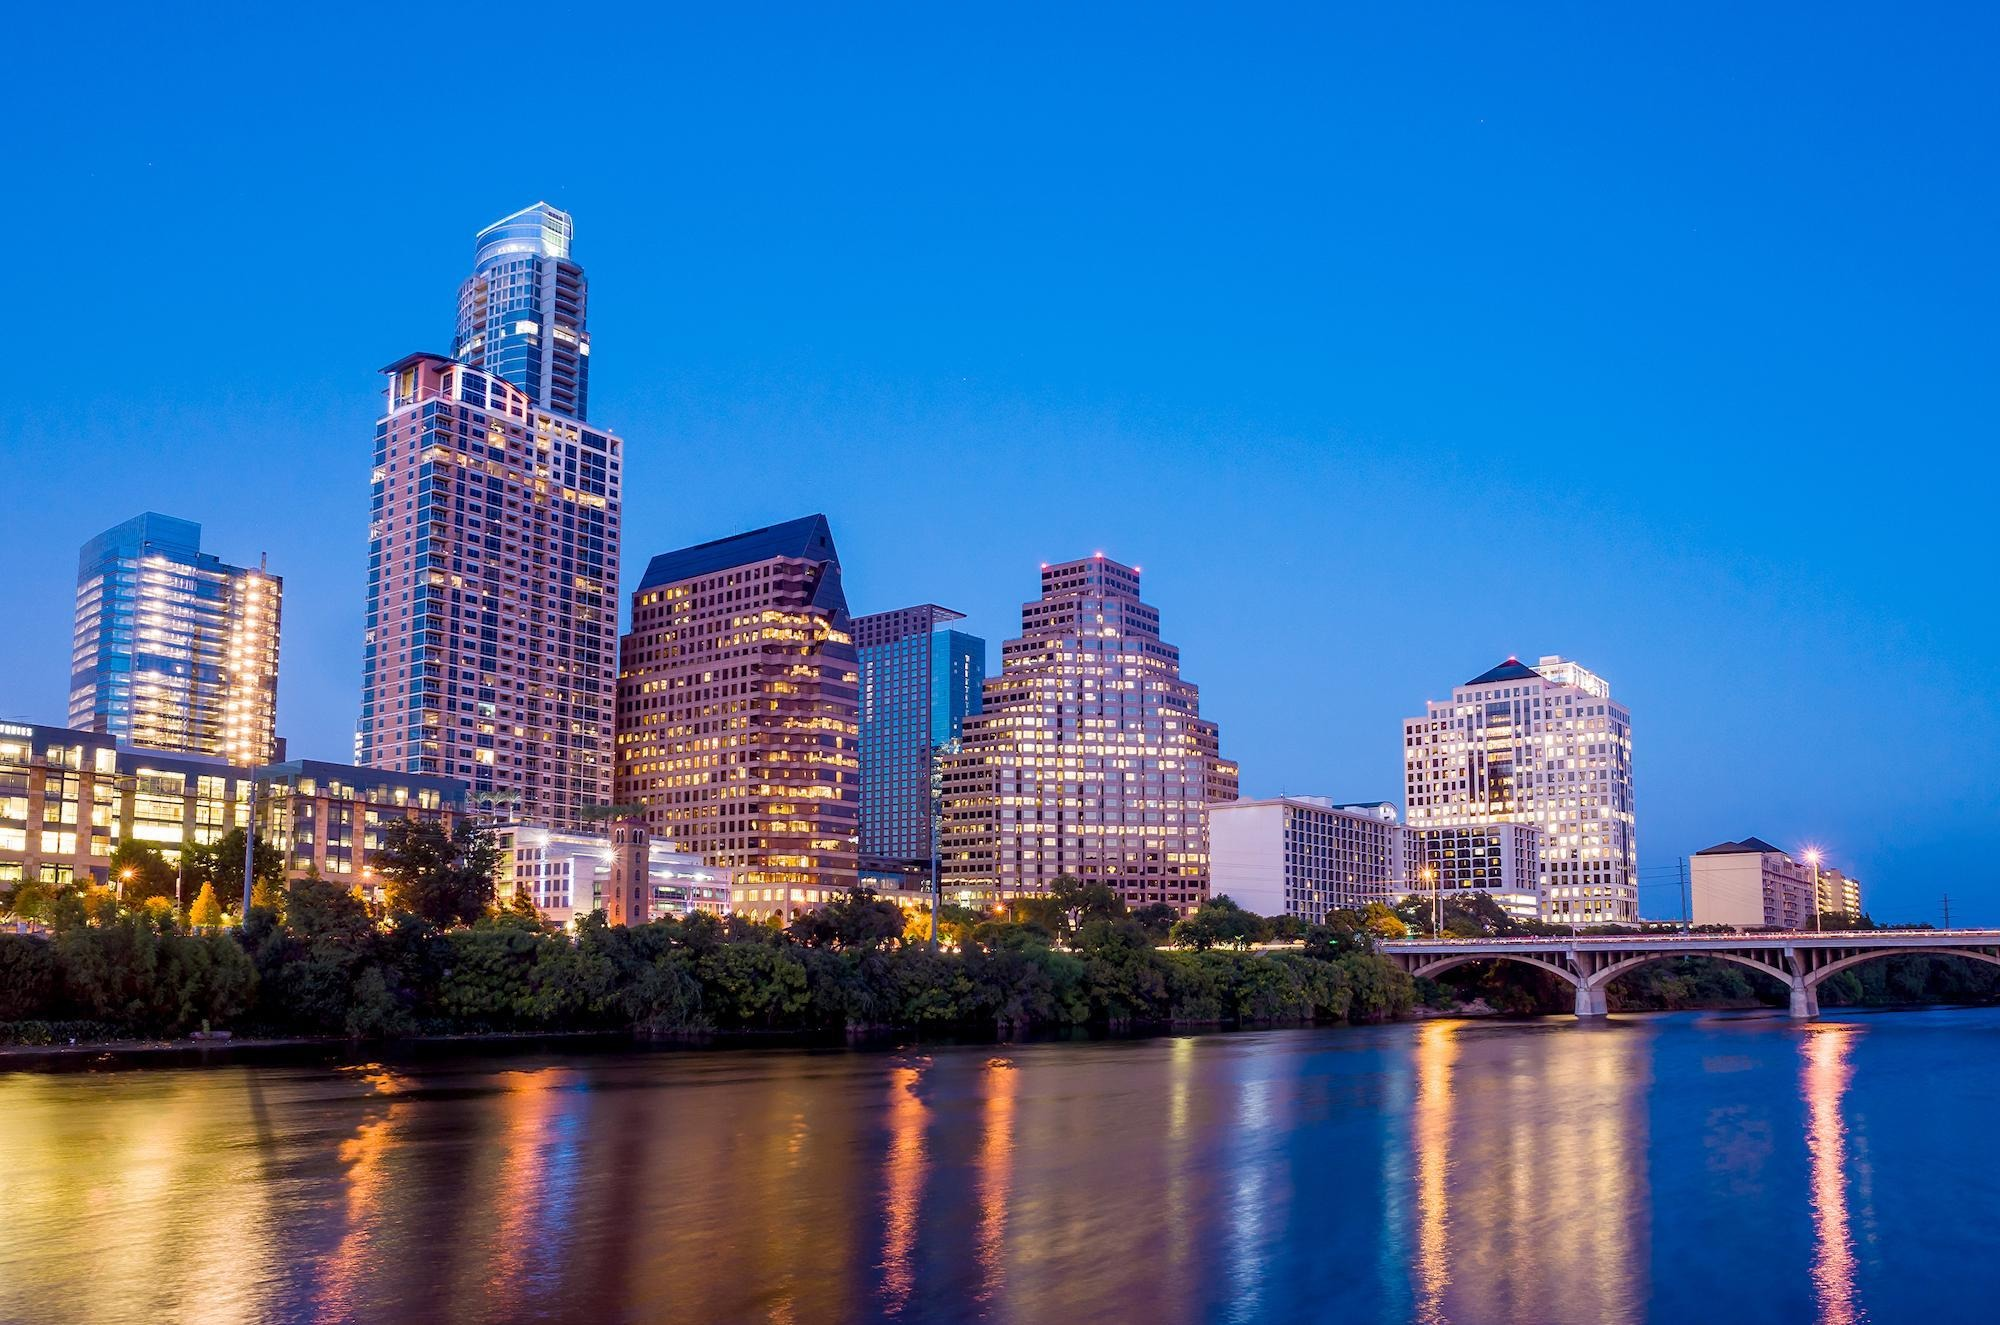 How to Spend 1 Day in Austin